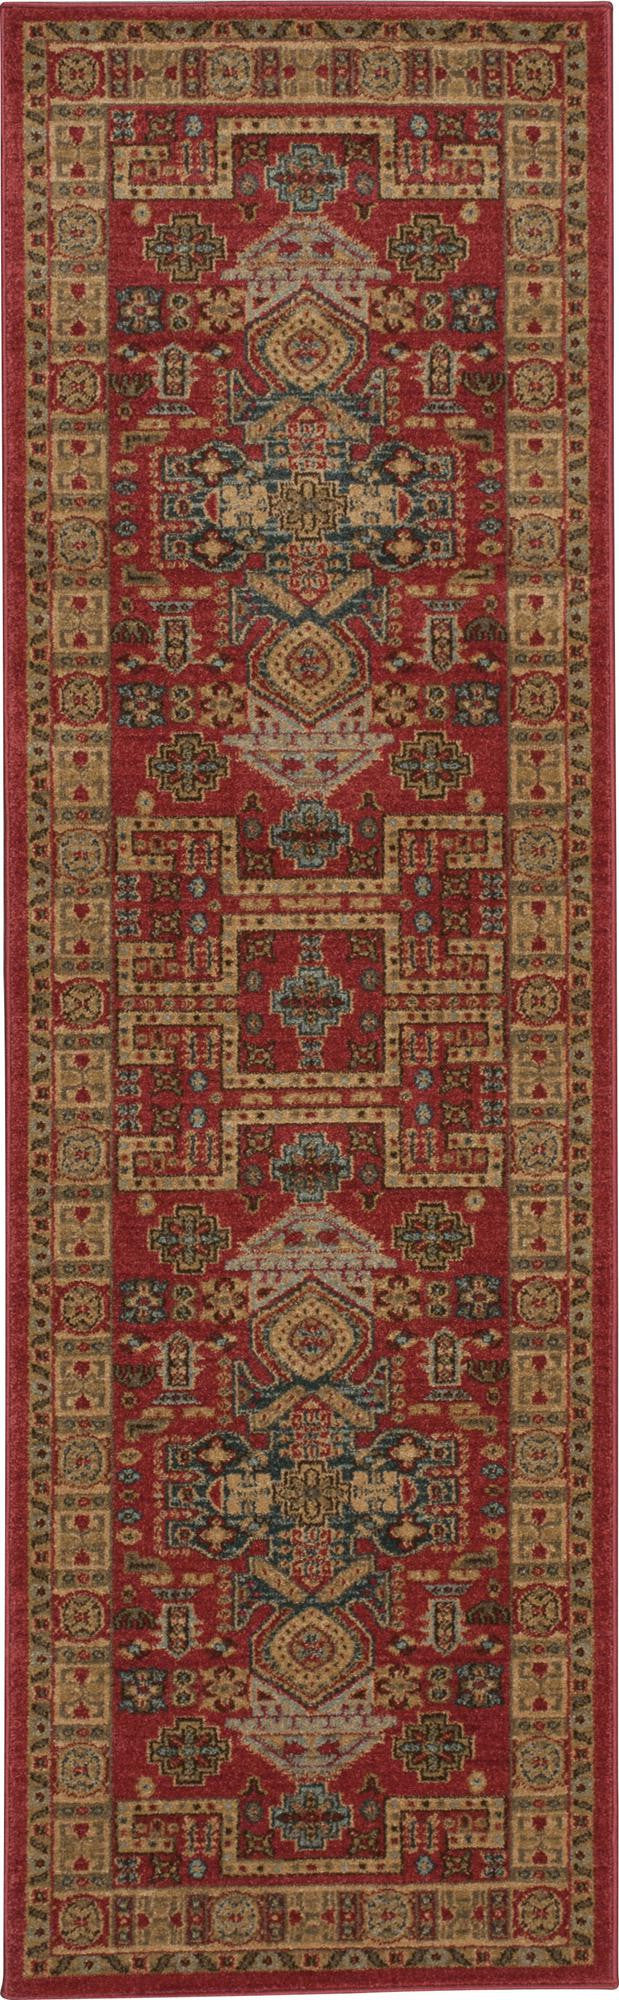 Nourison Maymana Red Area Rug MYN11 RED